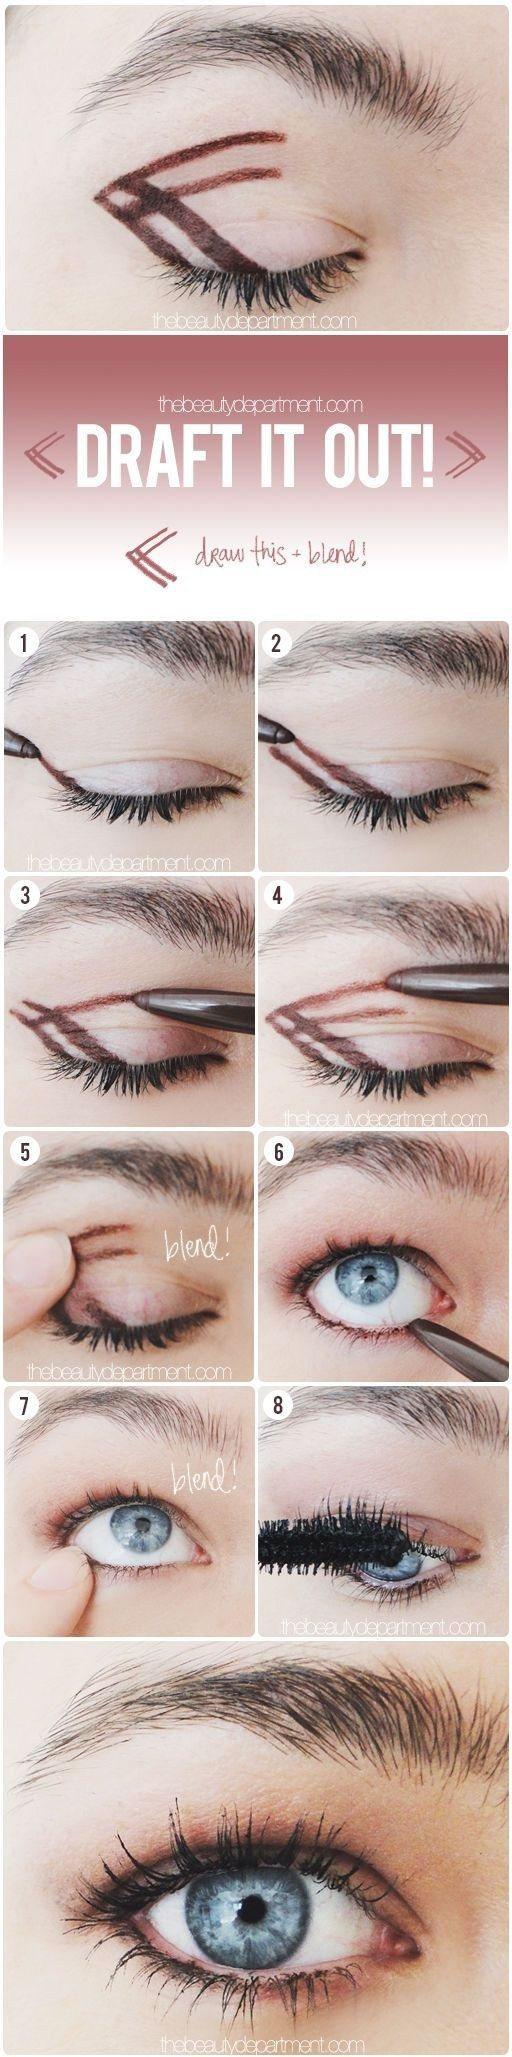 https://www.echopaul.com/ Use this drawing technique to get the easiest, most natural smoky eye ever. | 41 Life-Saving Beauty Hacks Every Girl Should Have In Her Arsenal